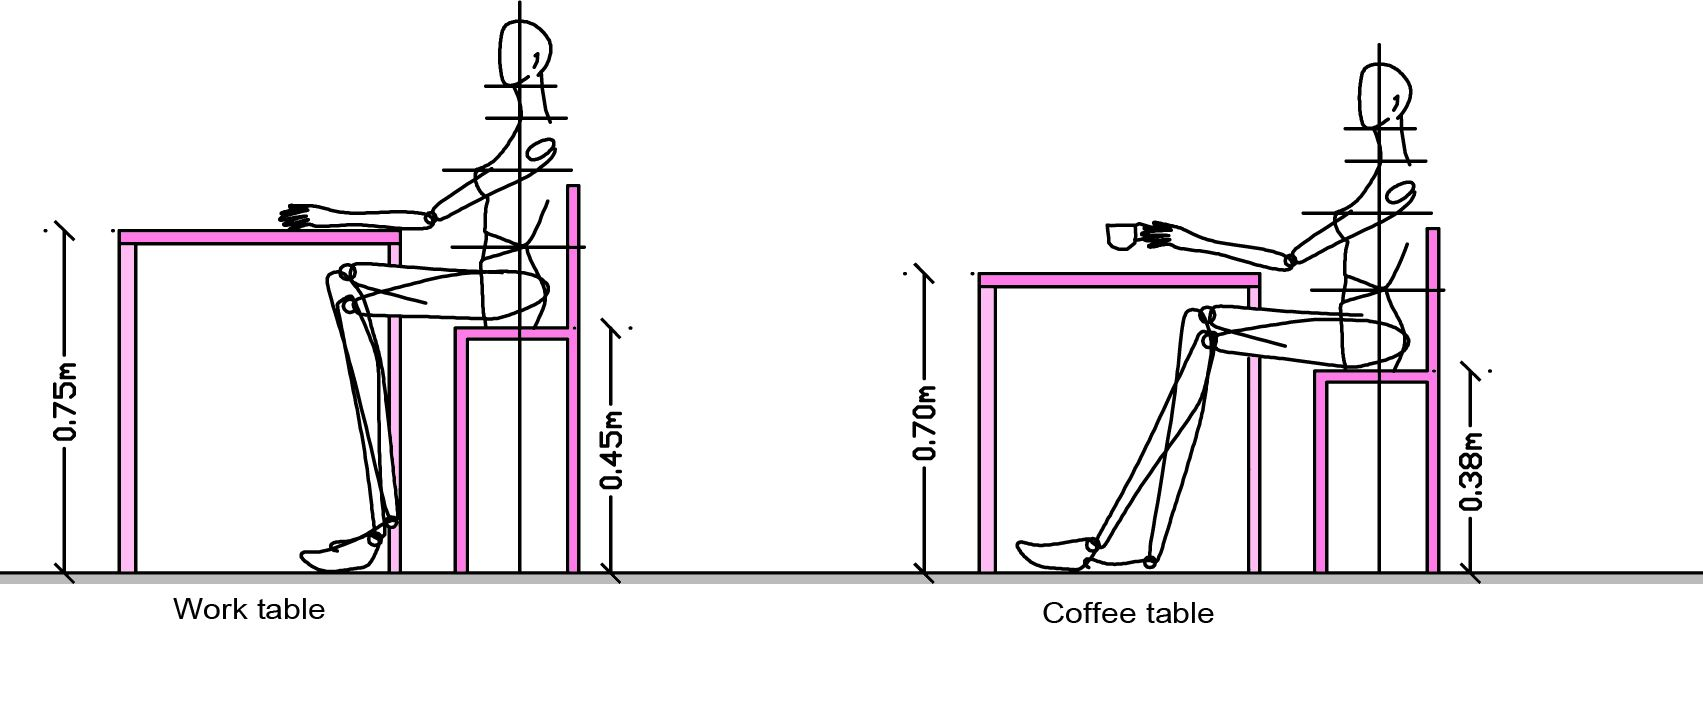 Ergonomic Chair Dimensions Step 2 Desk And Body Measurements Ergonomics For Table Dining Or